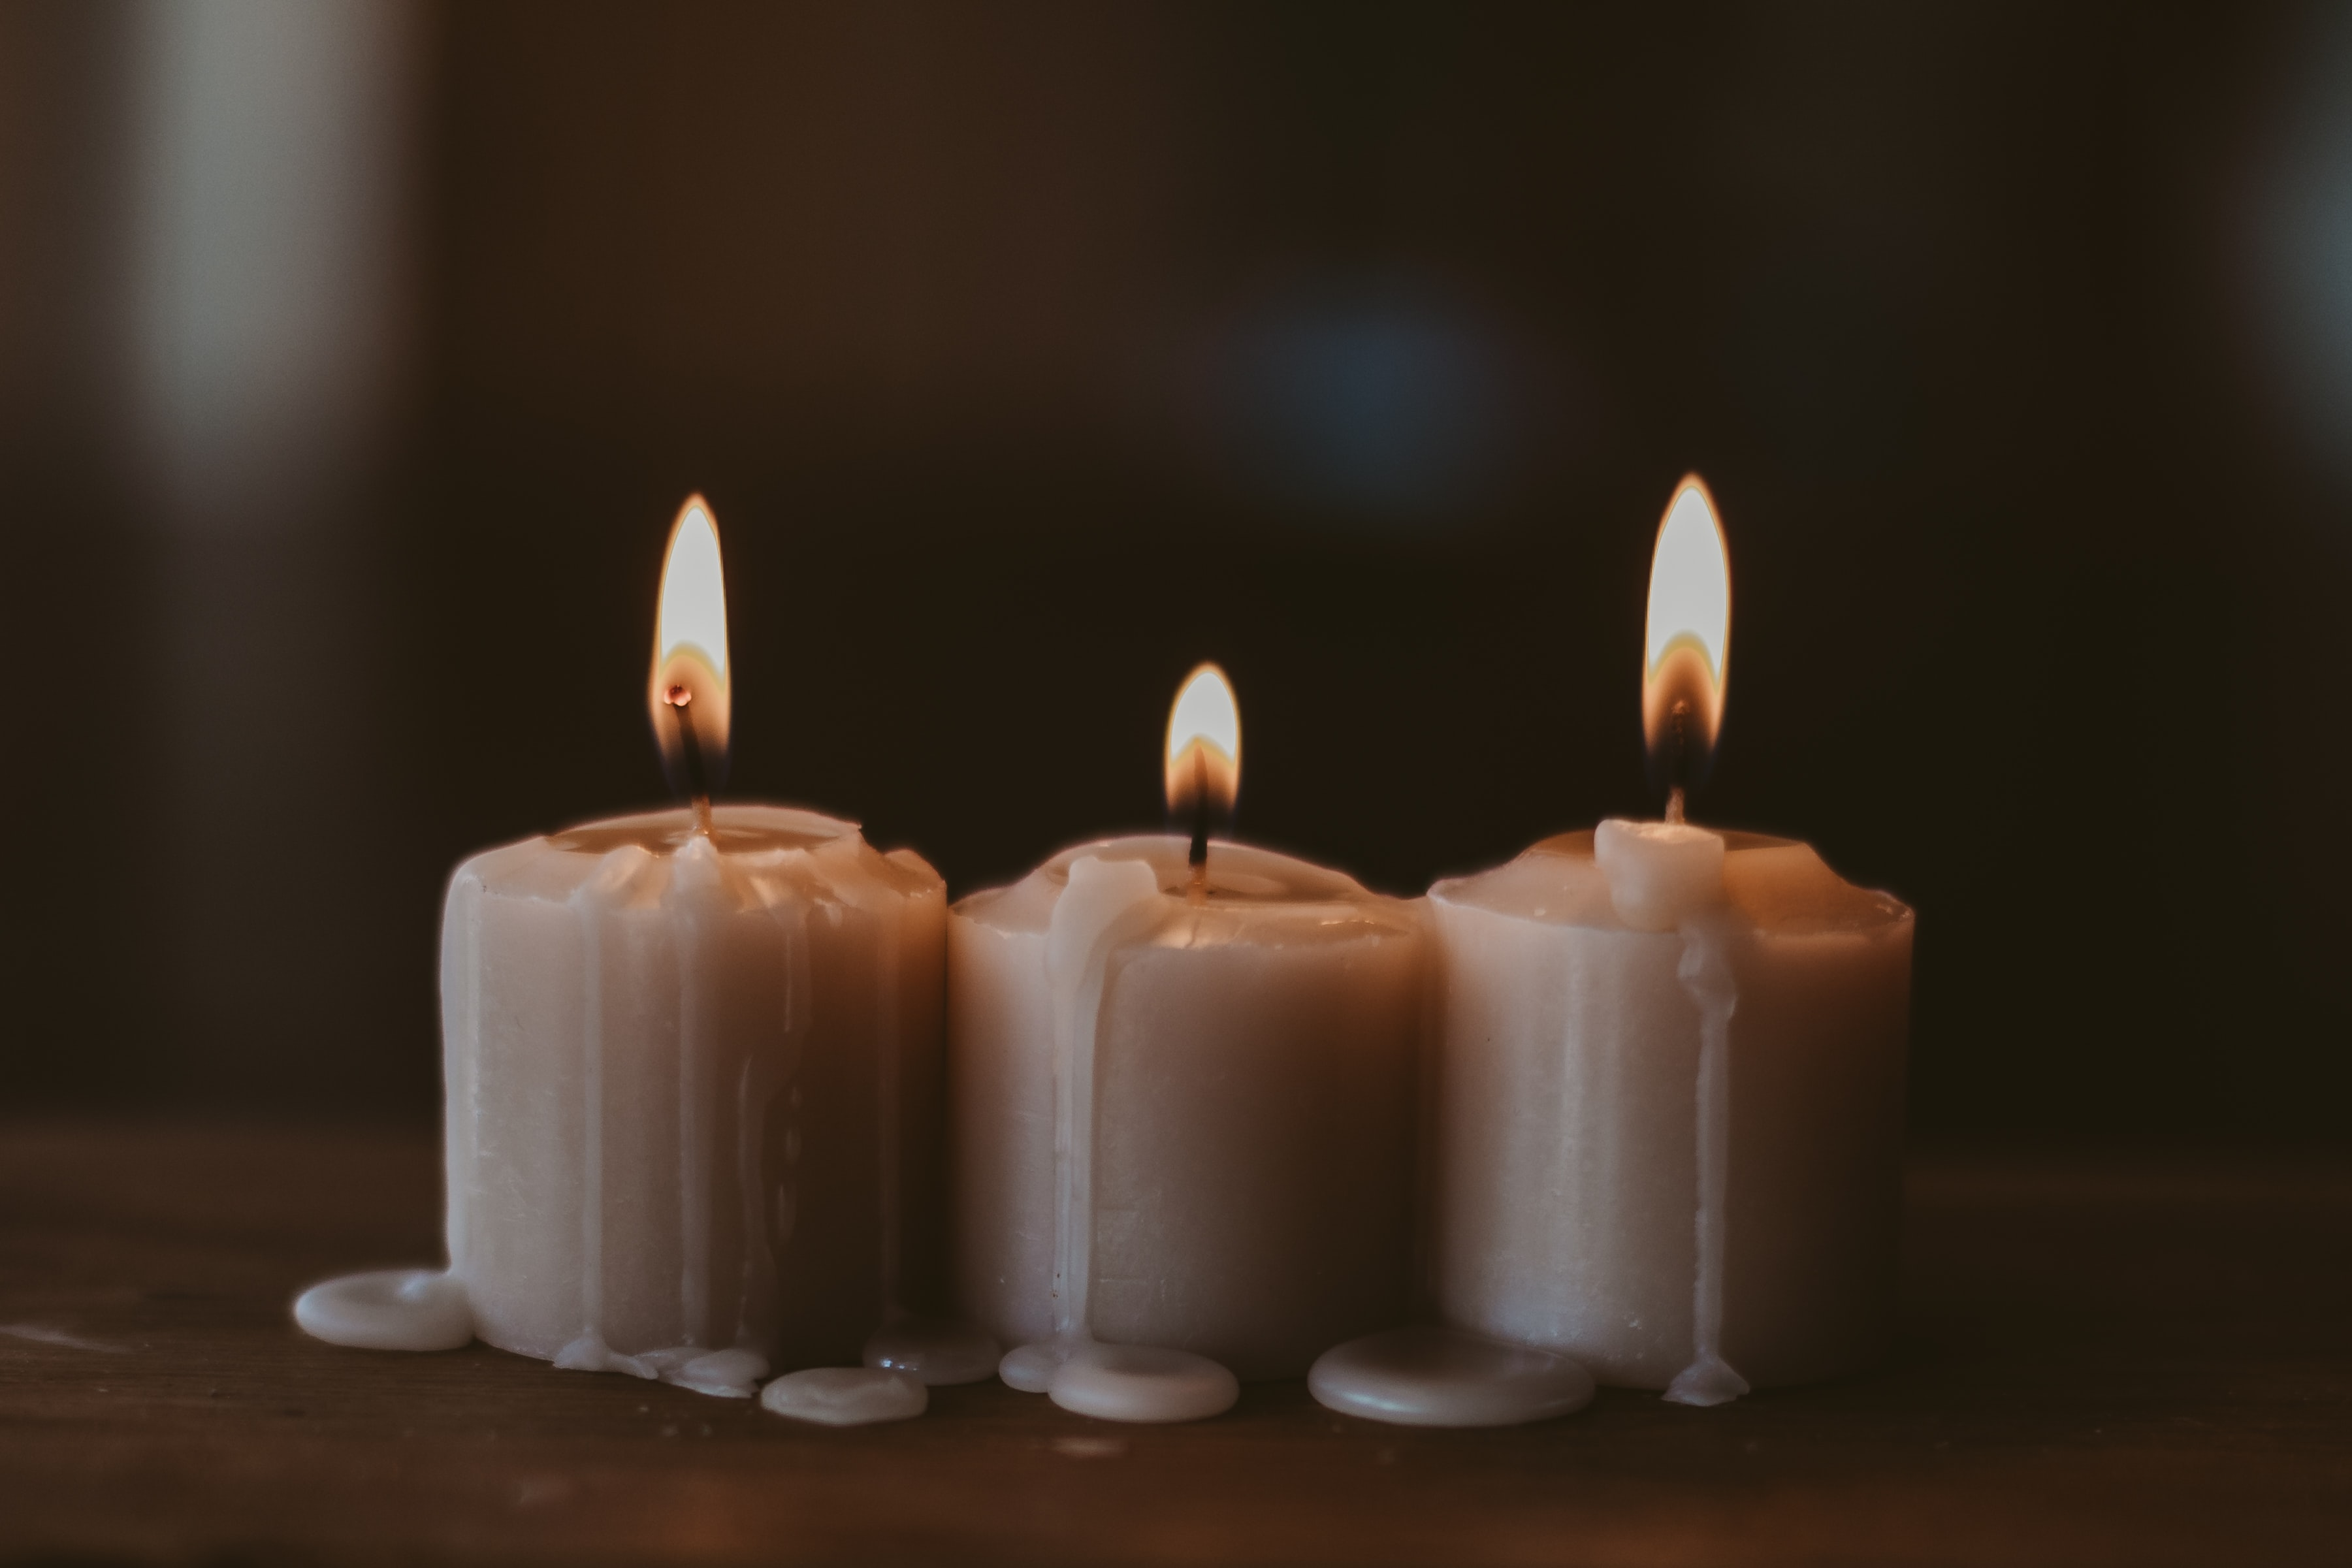 154712 Screensavers and Wallpapers Candles for phone. Download Fire, Candles, Flame, Miscellanea, Miscellaneous, Coziness, Comfort, Wax pictures for free